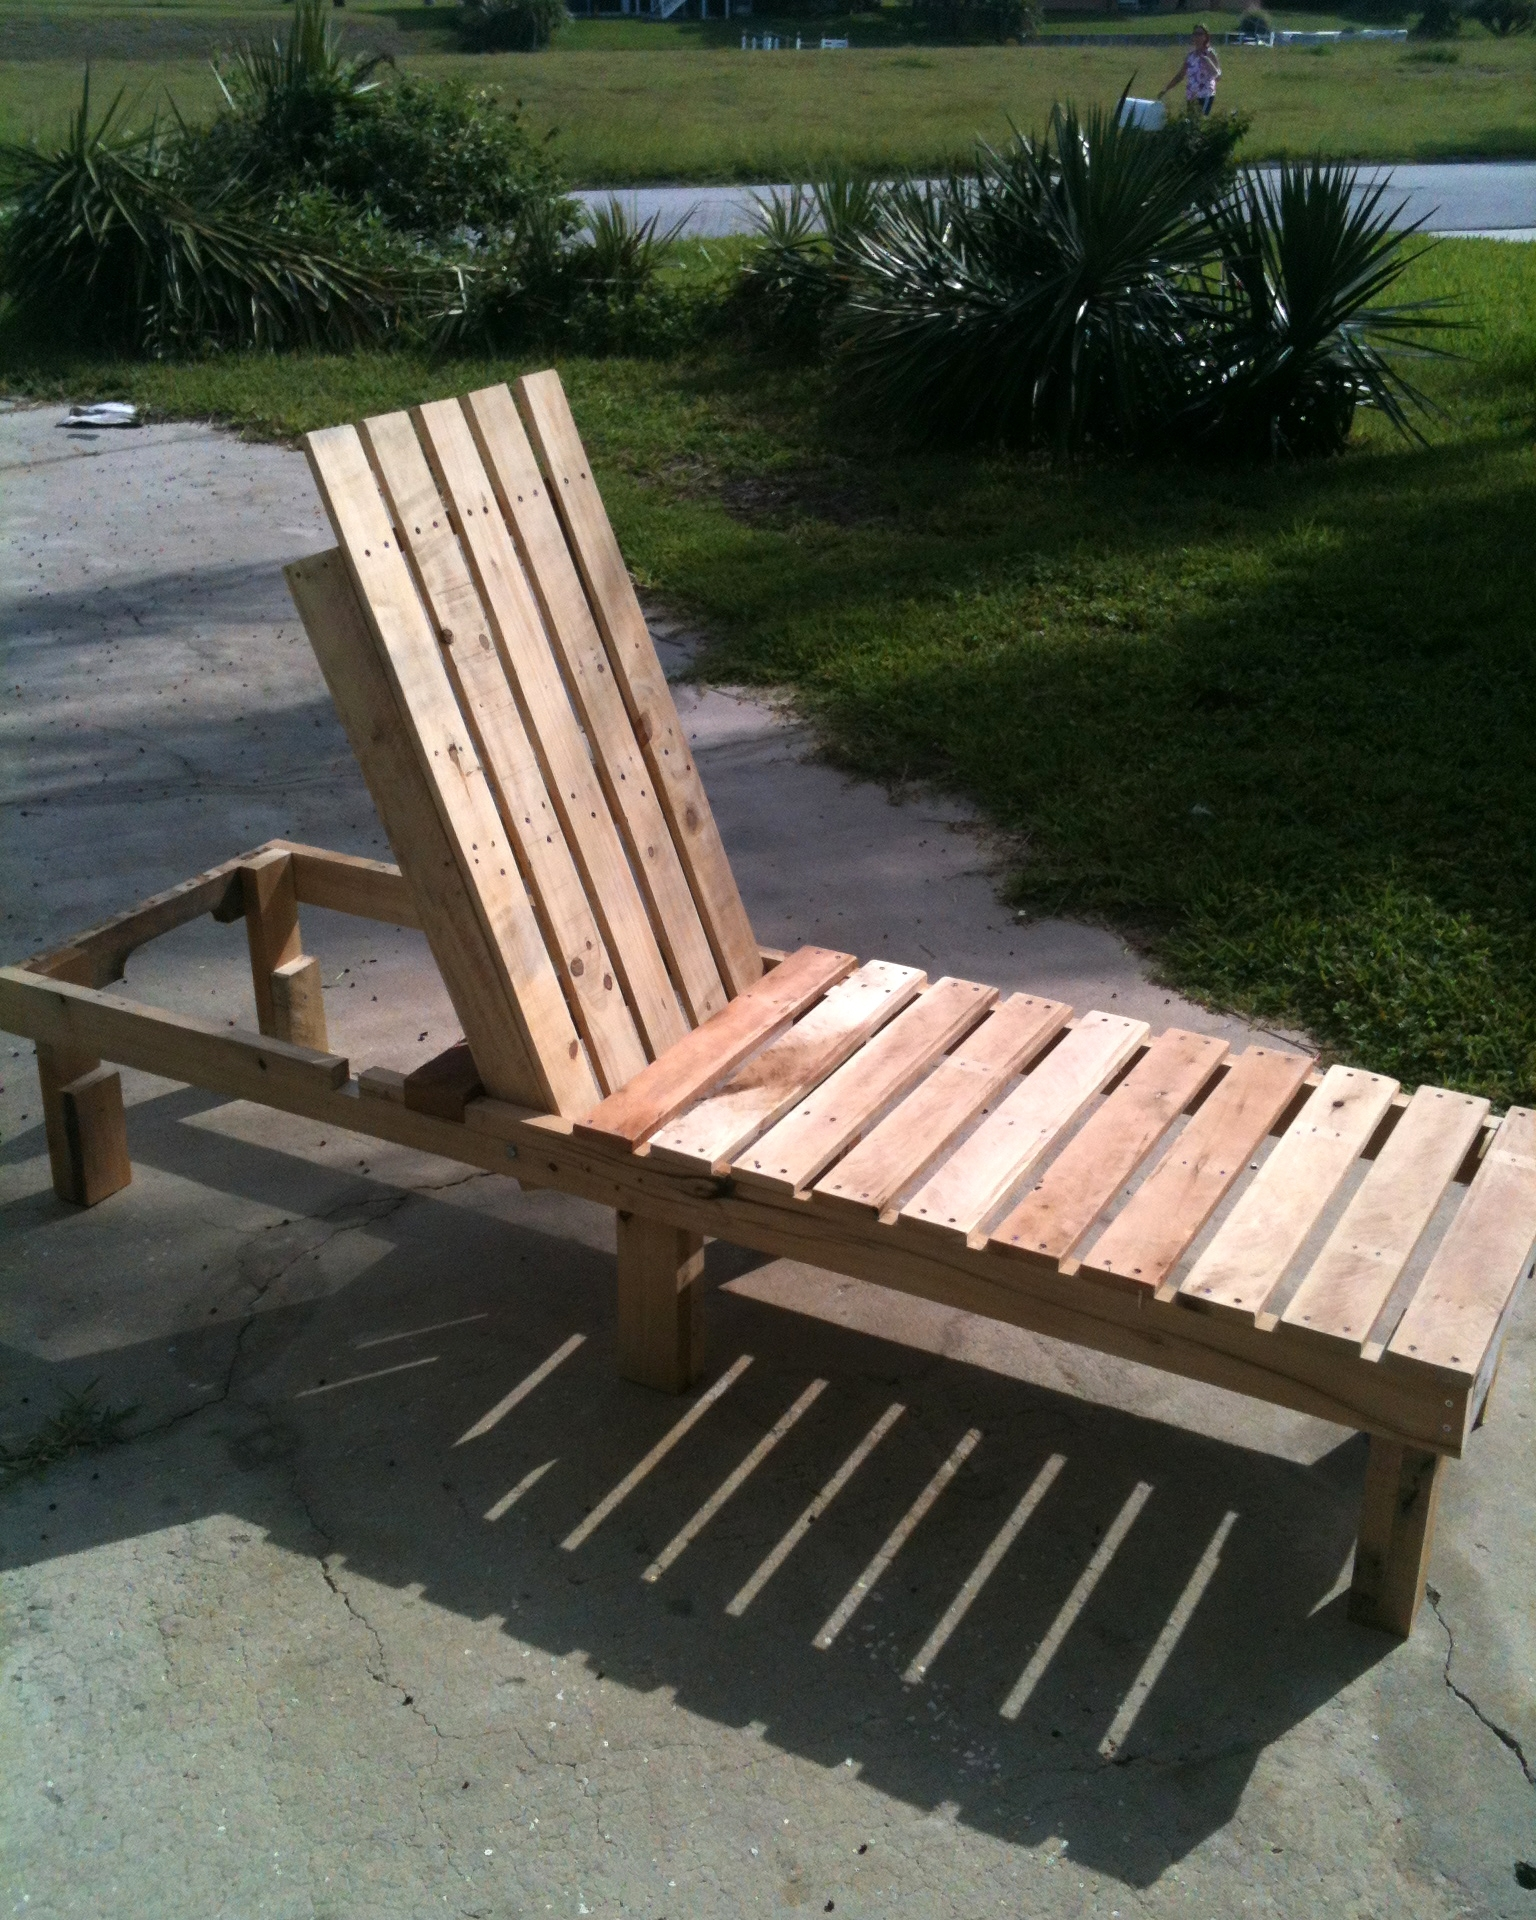 Chaise Loungepallirondack – Diy Projects Pertaining To Preferred Diy Outdoor Chaise Lounge Chairs (View 13 of 15)